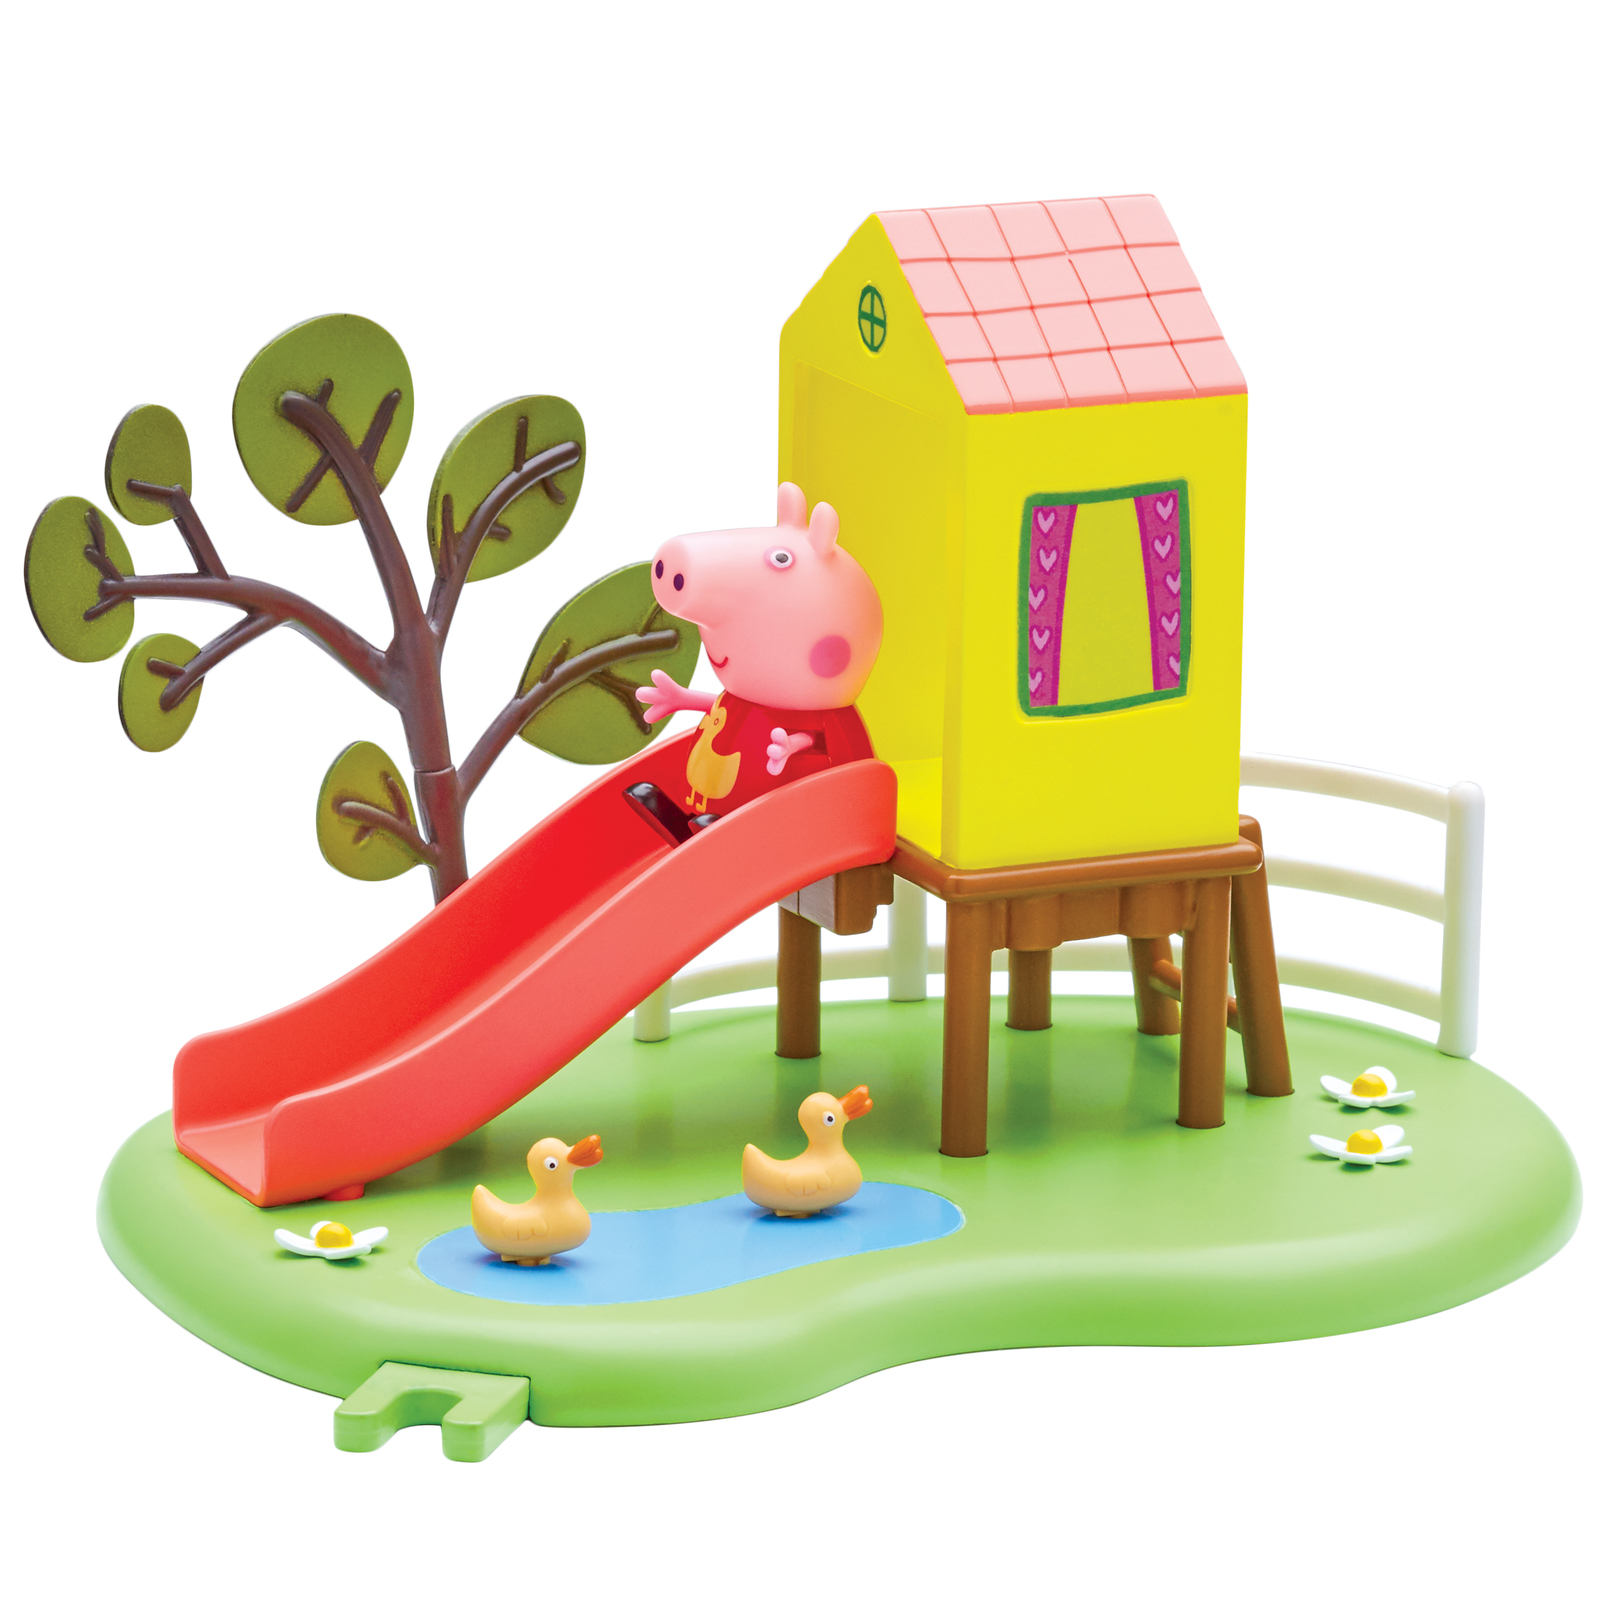 Peppa Pig Outdoor Fun Slide Playset Toy At Mighty